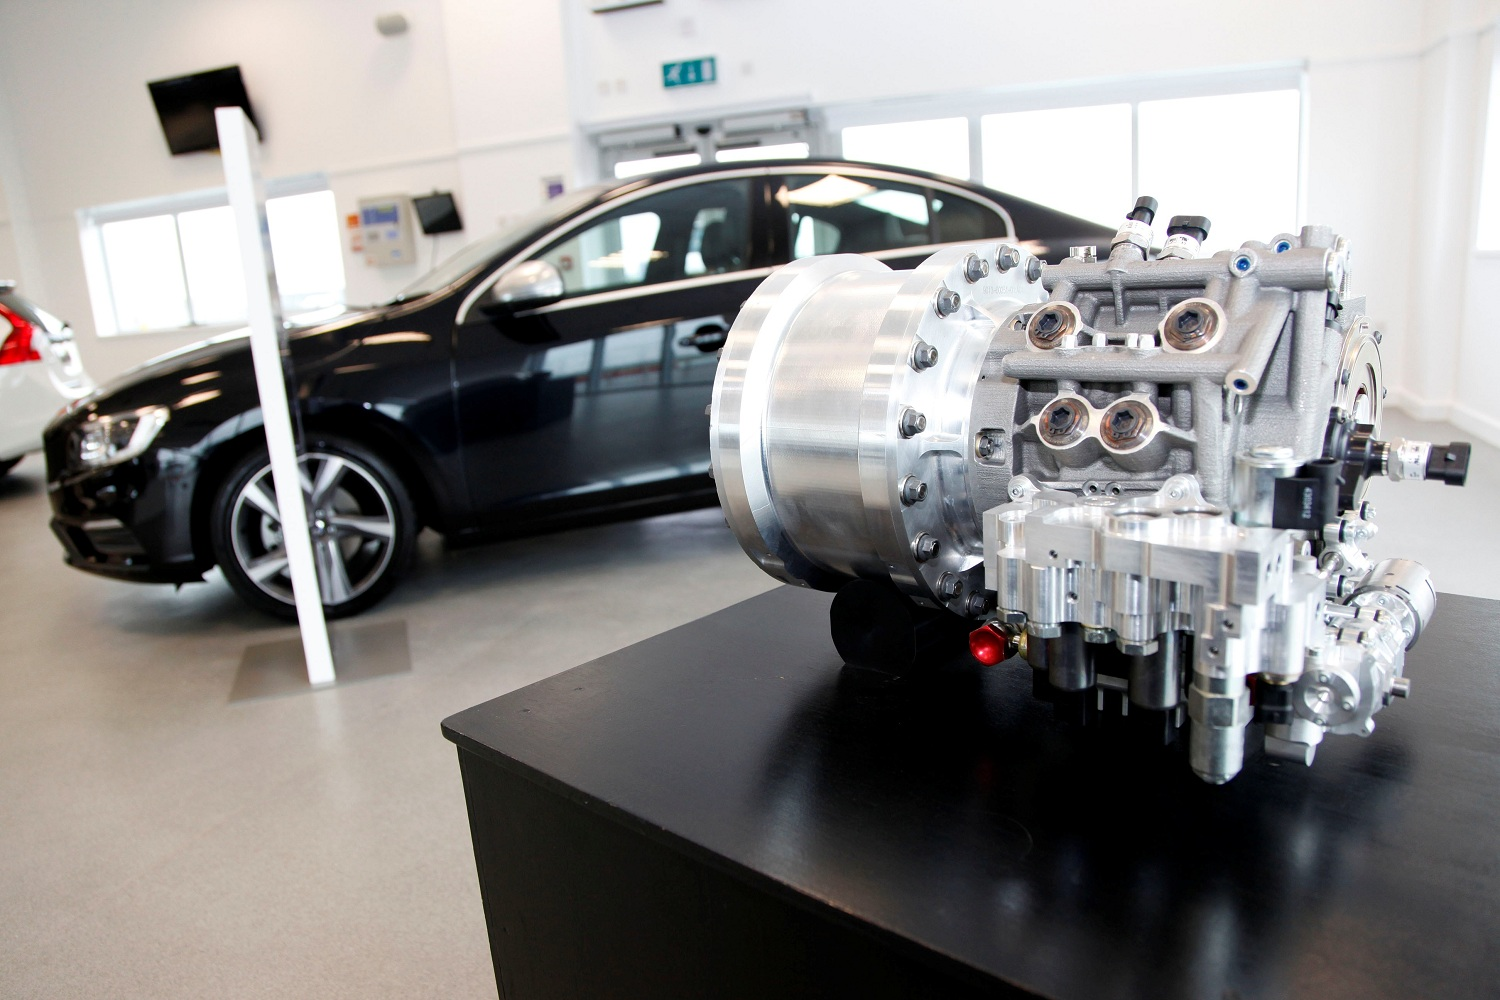 The Volvo S60 T5 and its flywheel